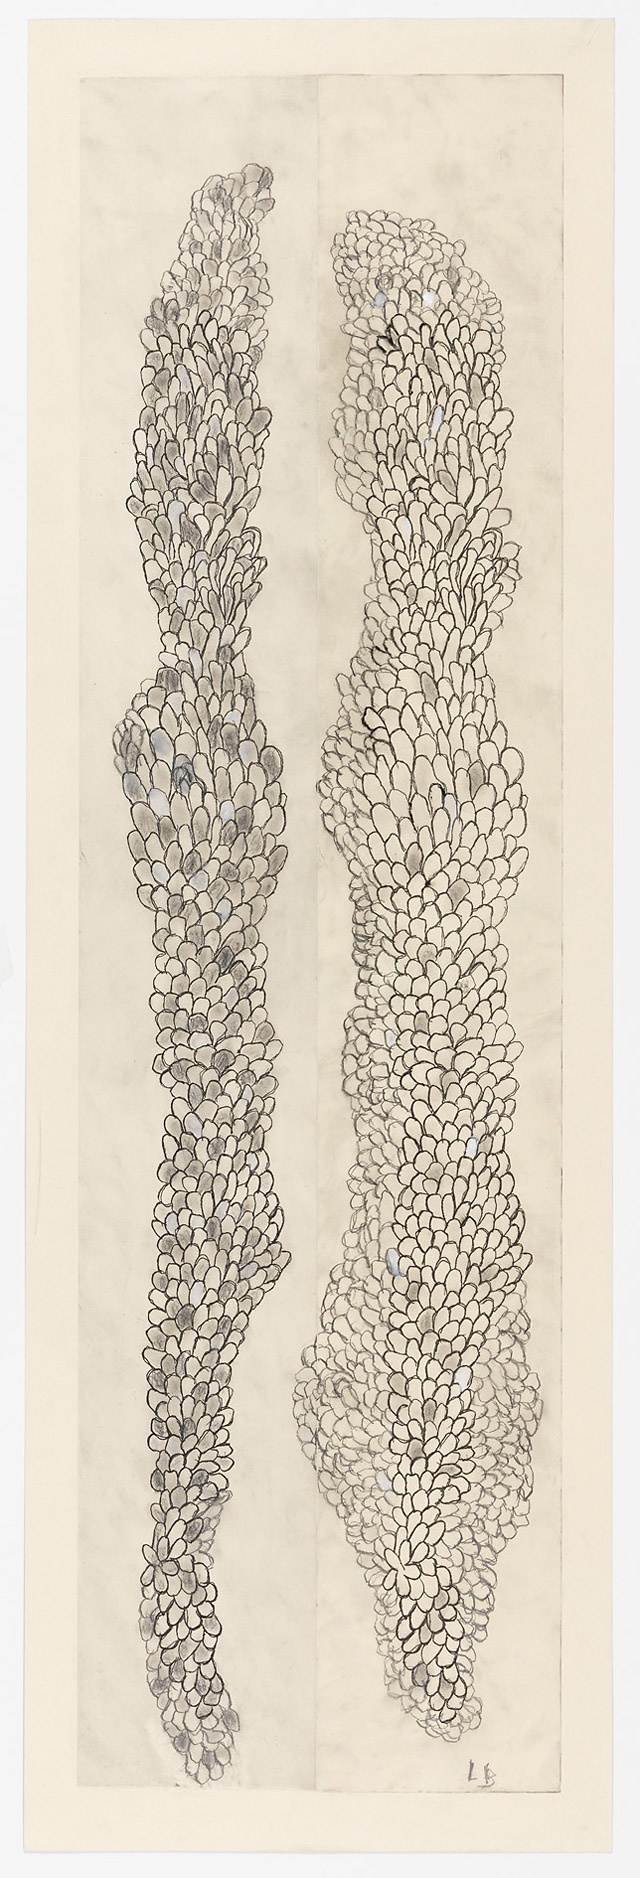 Louise Bourgeois, Tous les deux (Swaying), 2006. Etching, ink, gouache and…